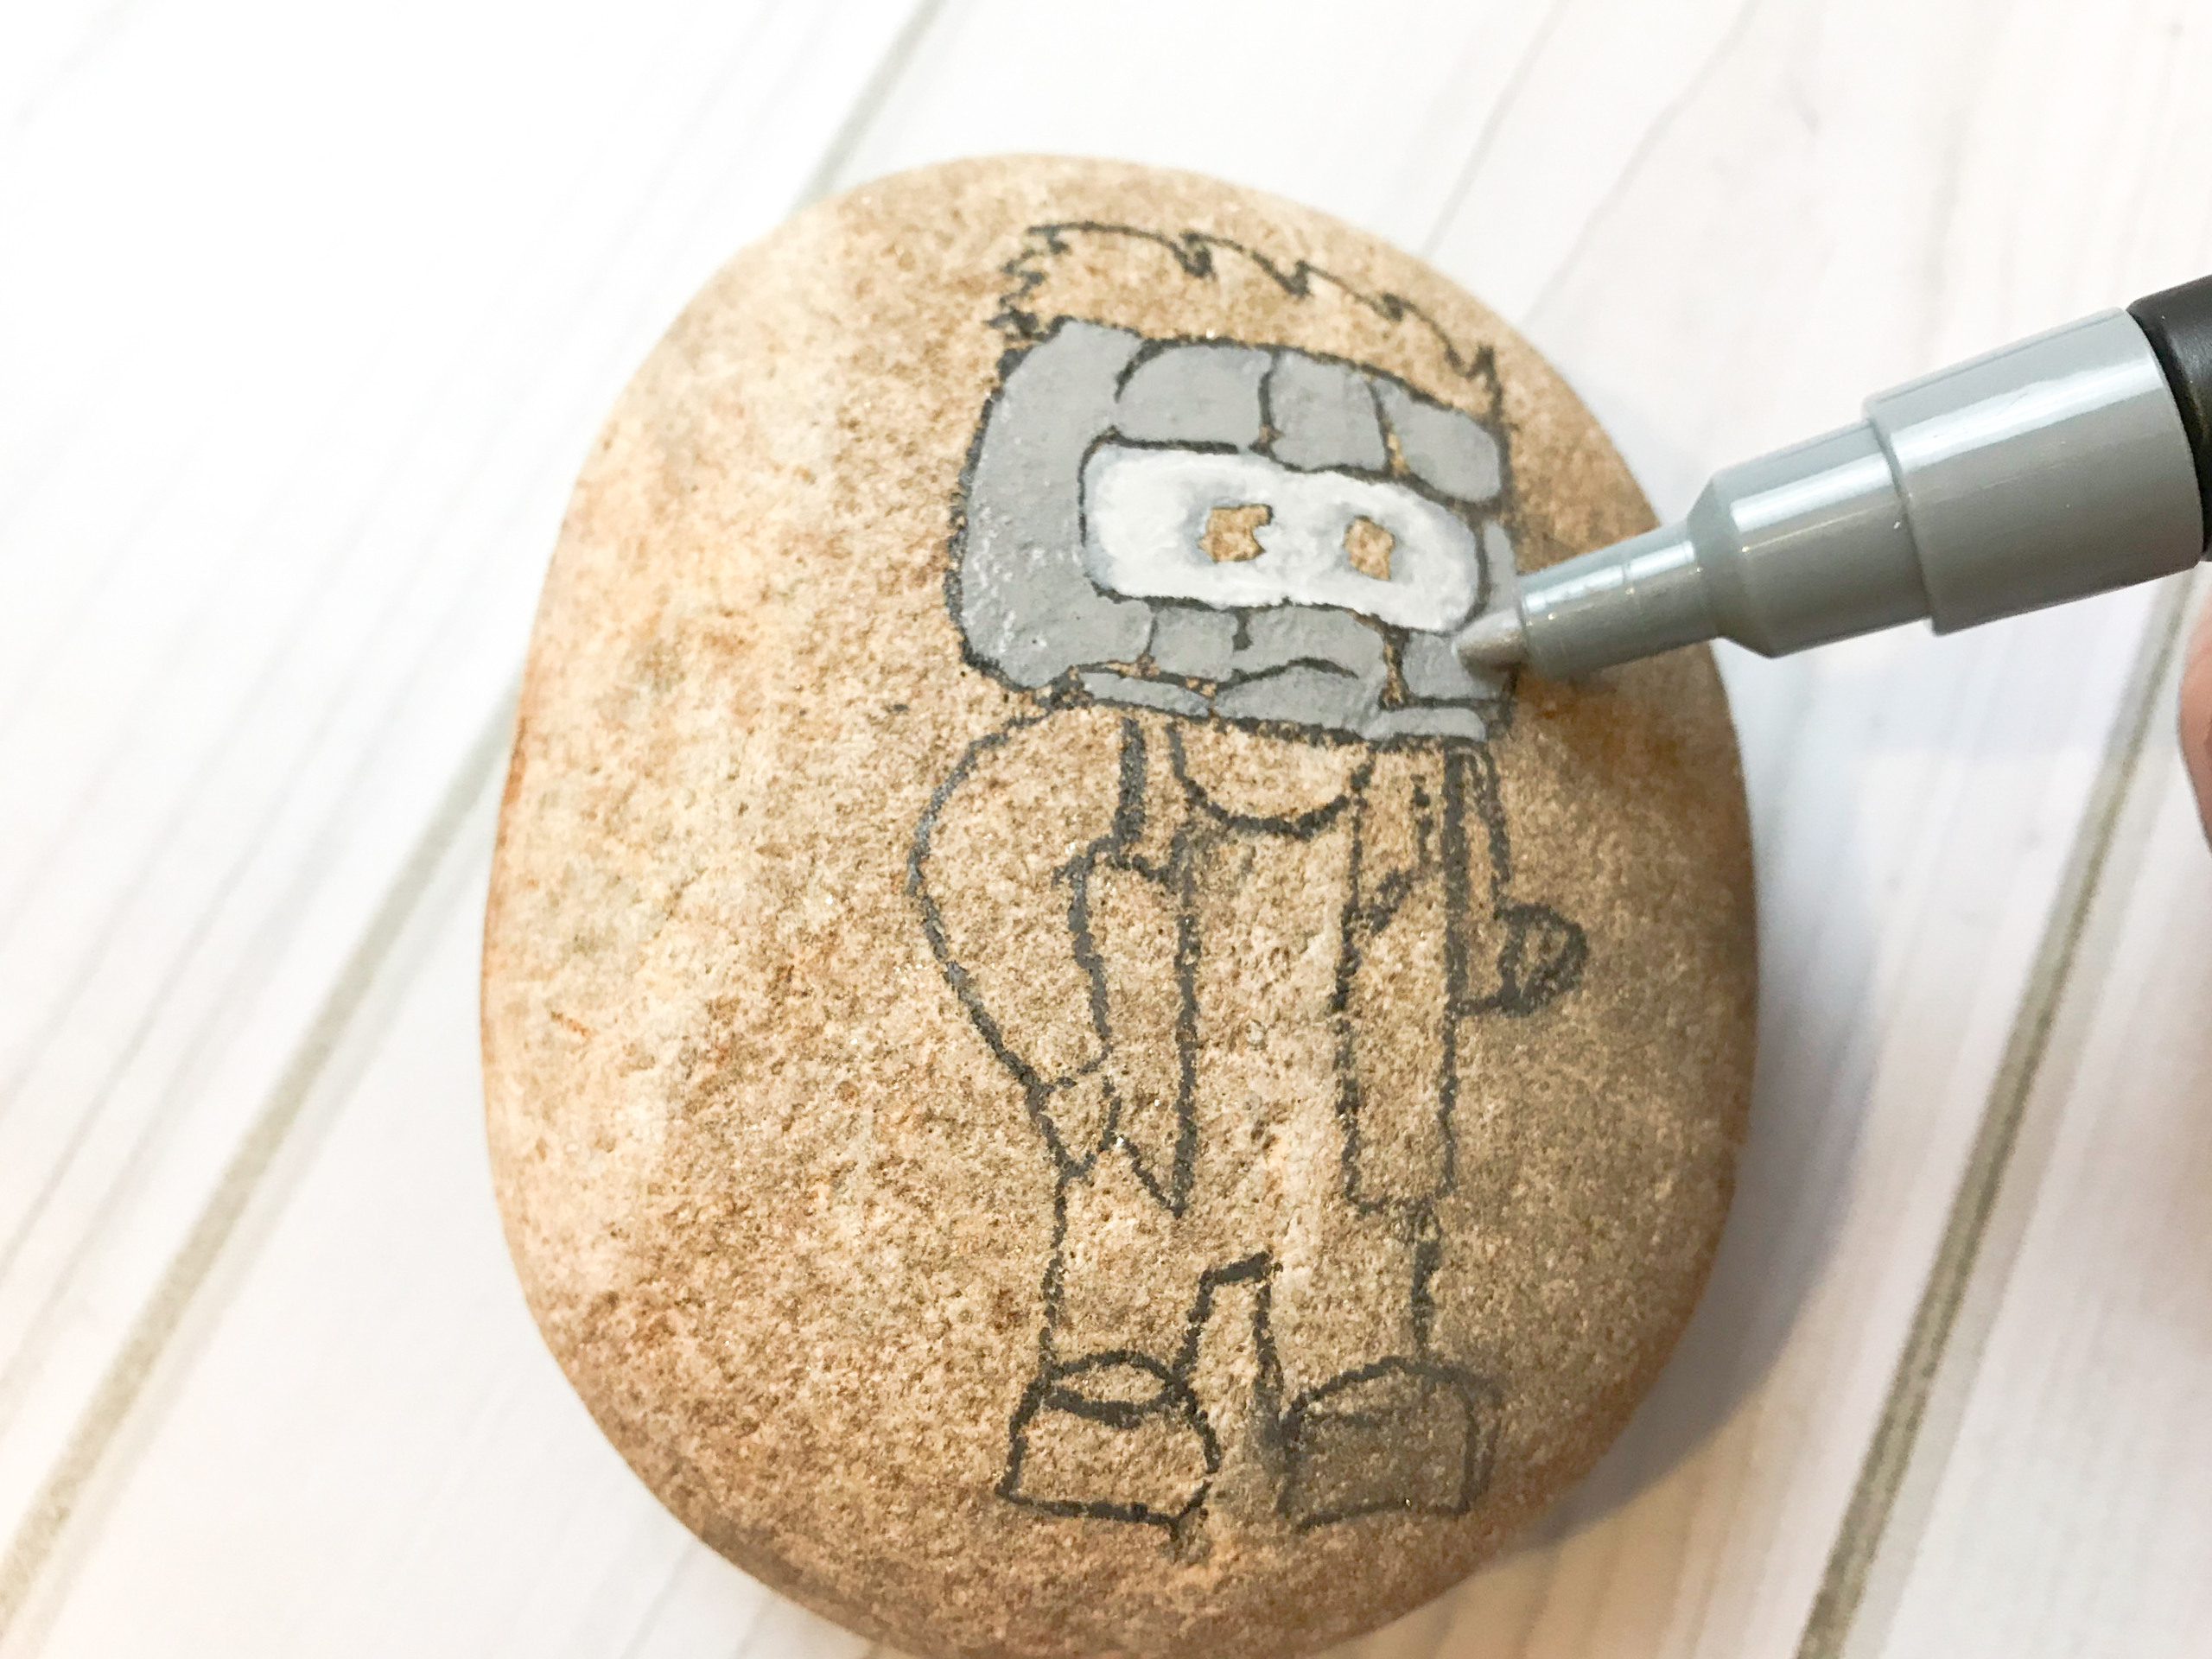 Find a design to paint on your rock and draw an outline